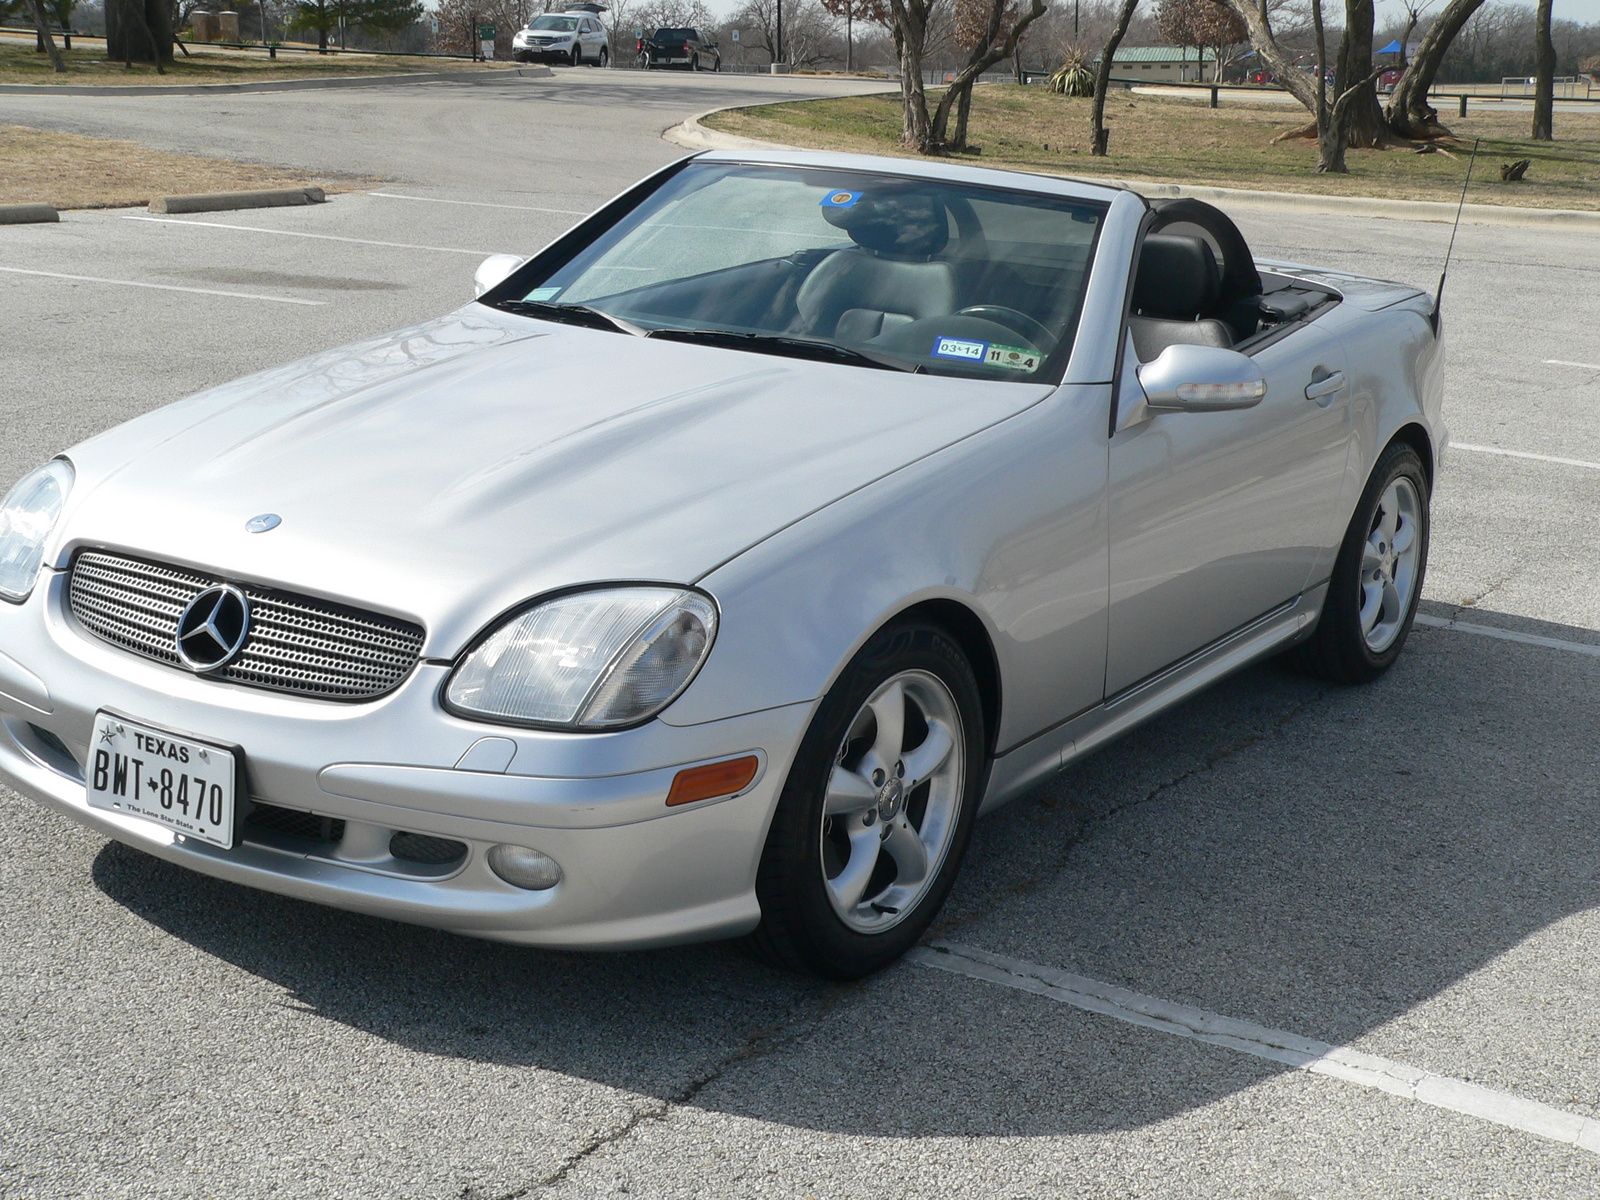 2001 mercedes benz slk class pictures cargurus for 2001 mercedes benz s500 specs